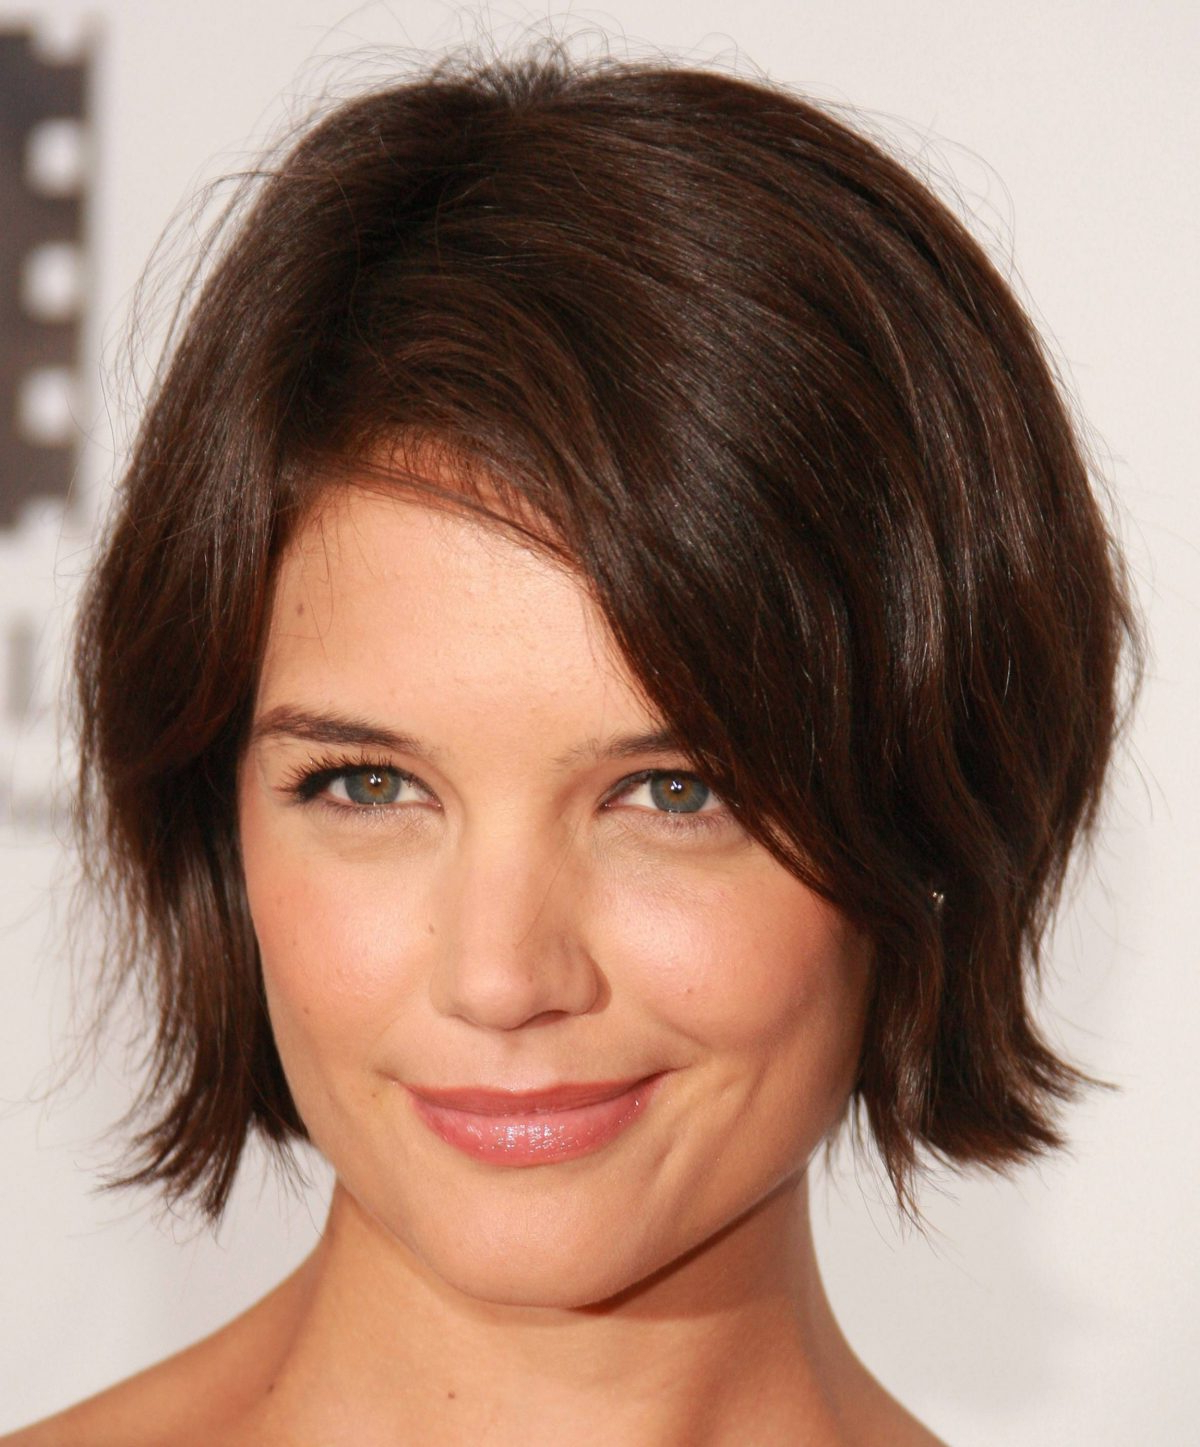 Best Short Hairstyles – Cute Hair Cut Guide For Round Face Shape With Short Hair Styles For Chubby Faces (View 20 of 25)